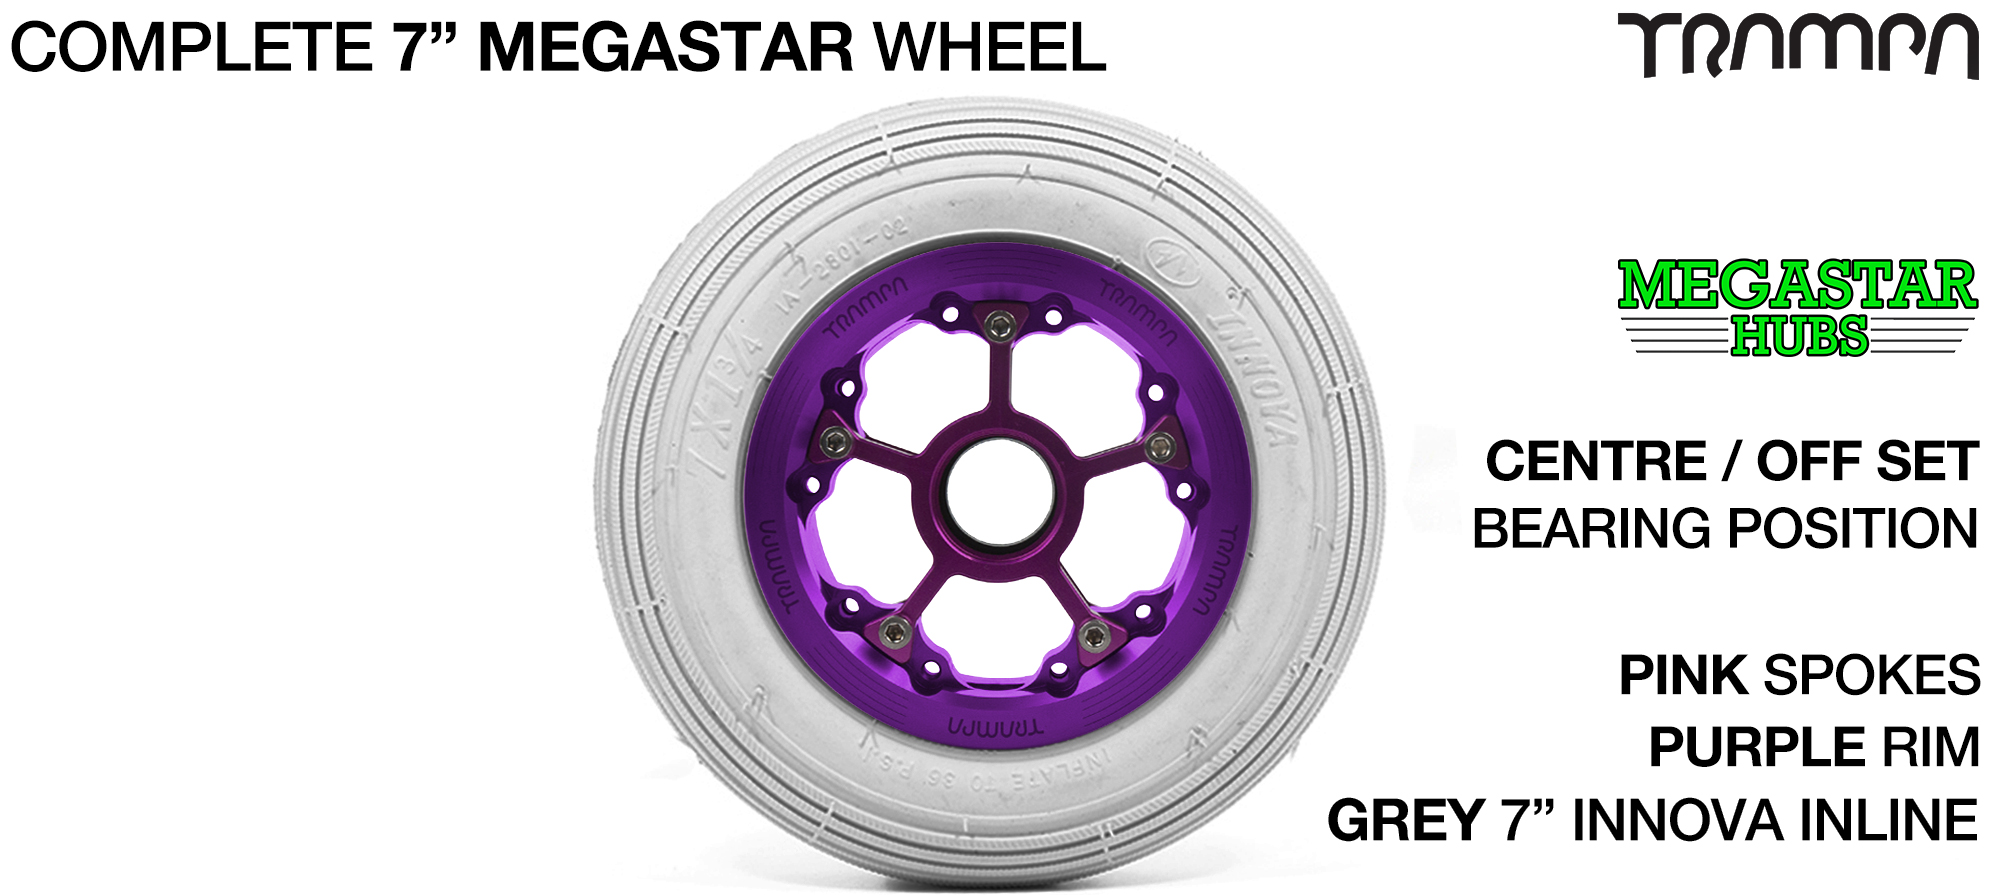 PURPLE MEGASTAR Rims with PINK Spokes & 7 Inch Tyres